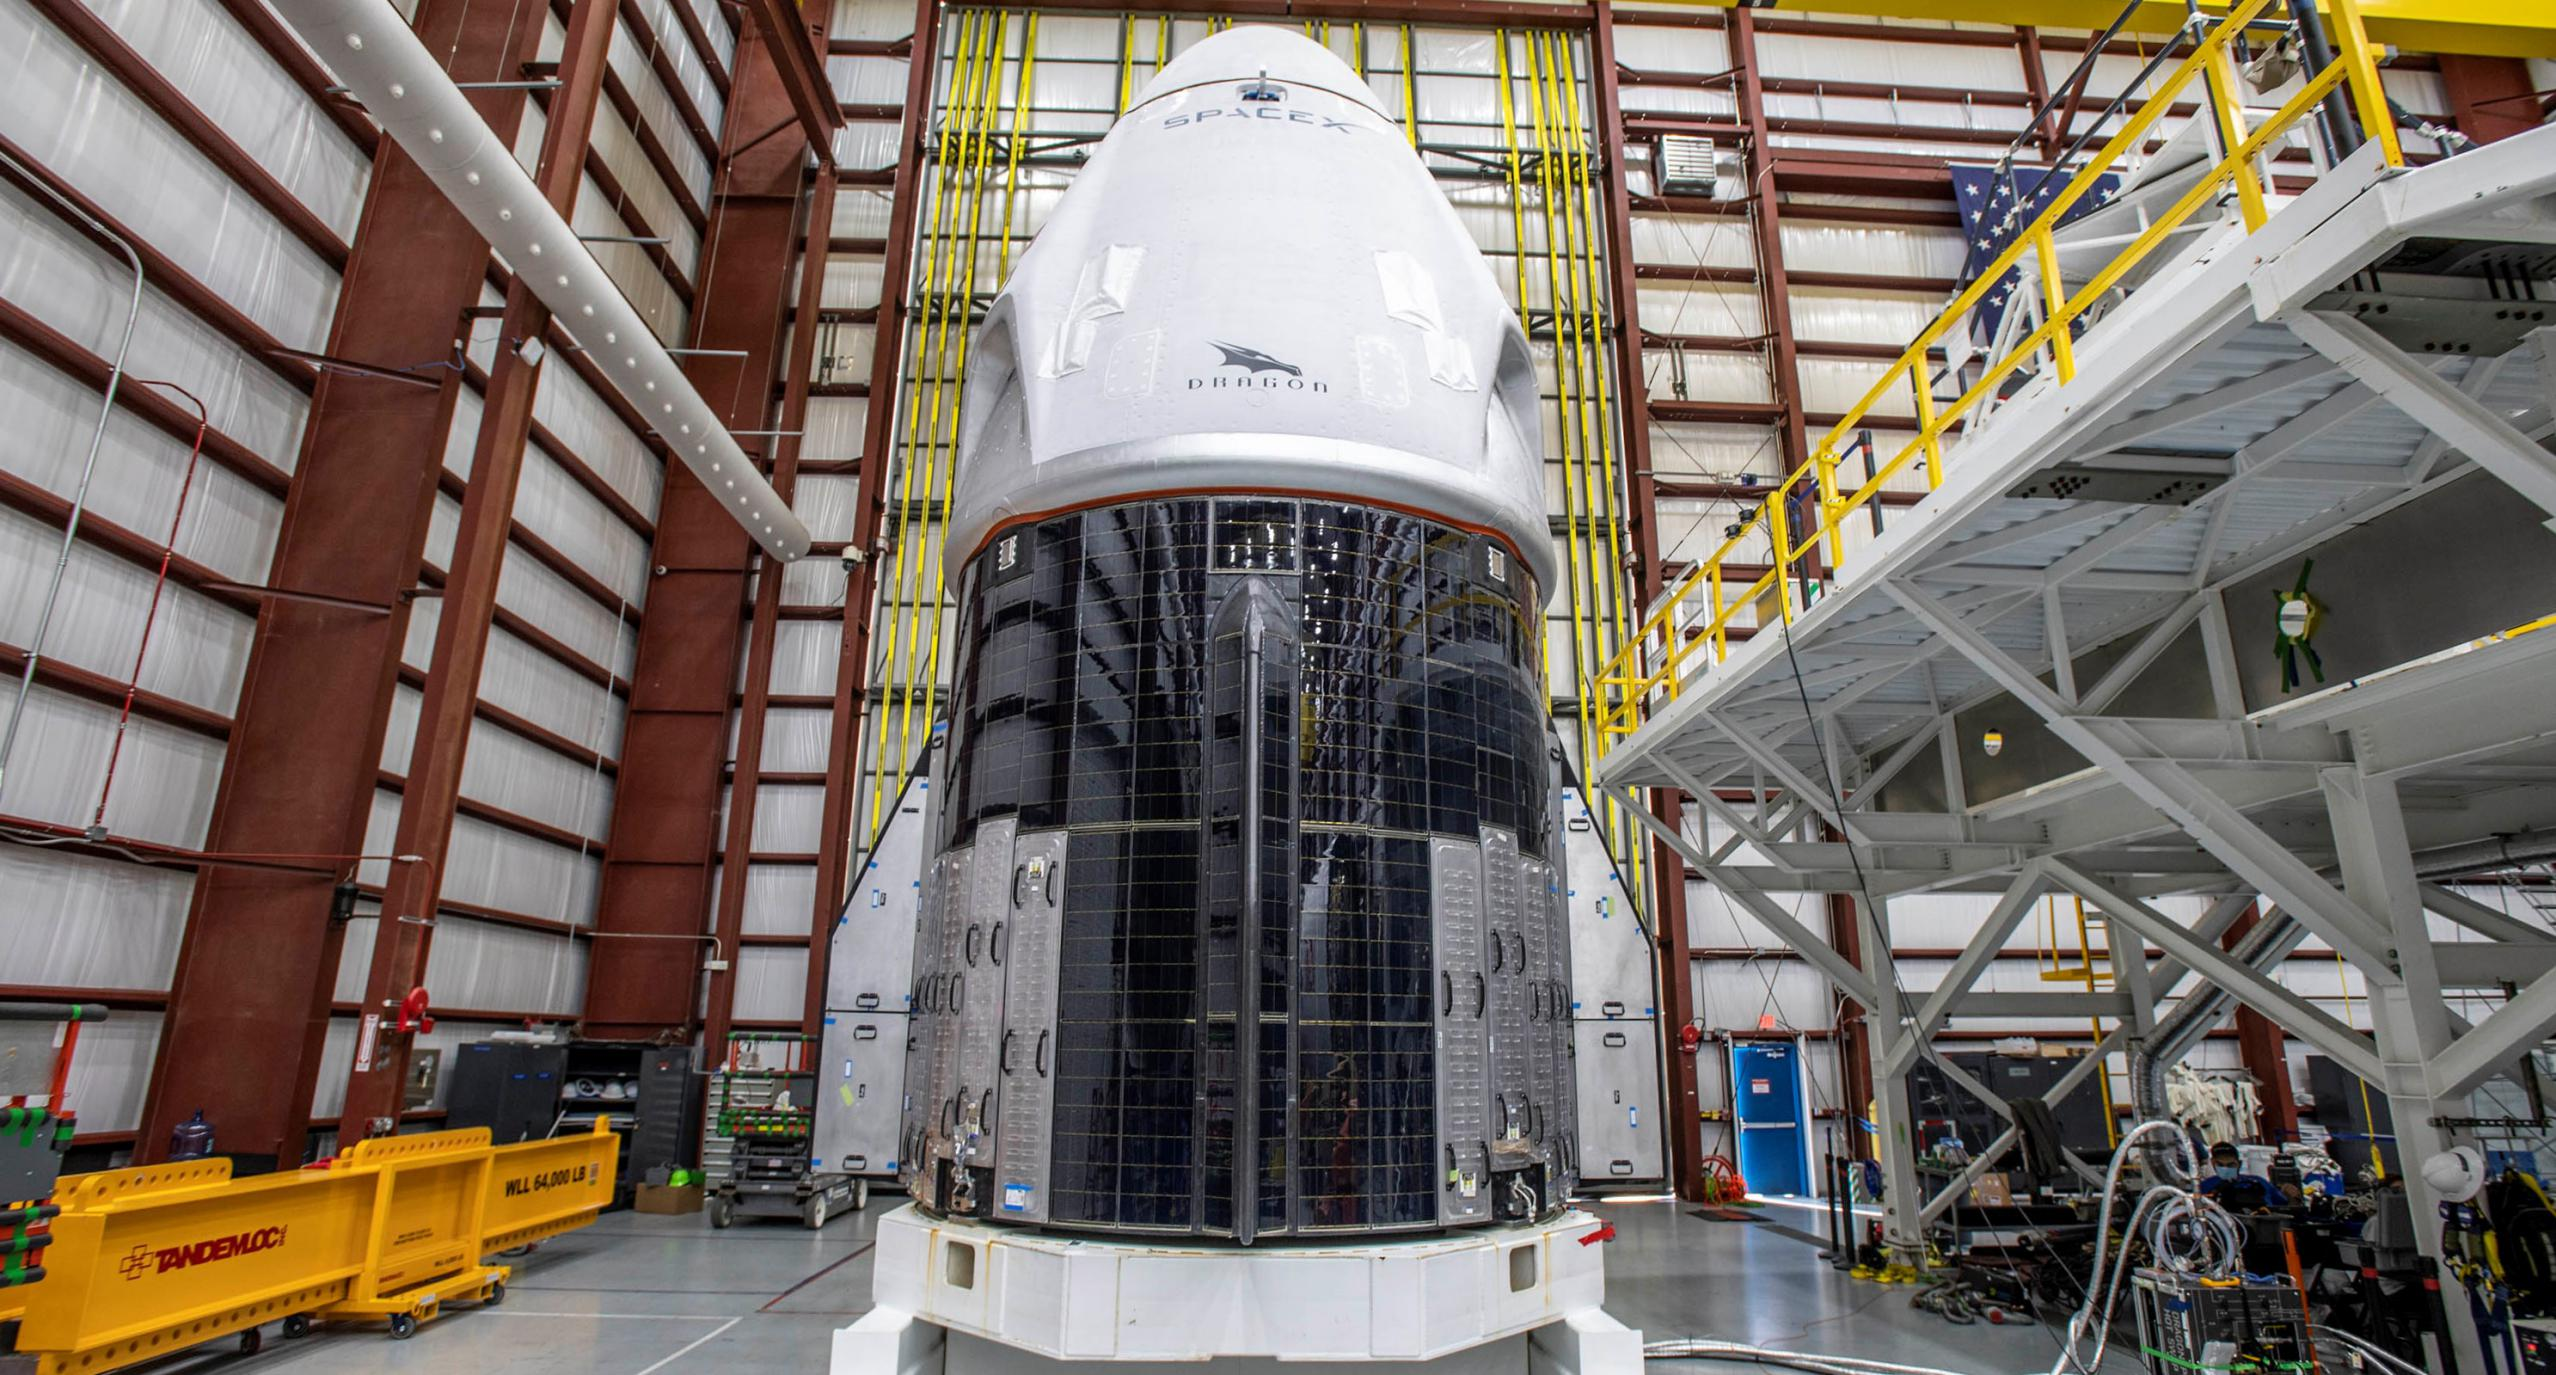 Crew-1 Crew Dragon C207 39A 110520 (SpaceX) 1 crop (c)